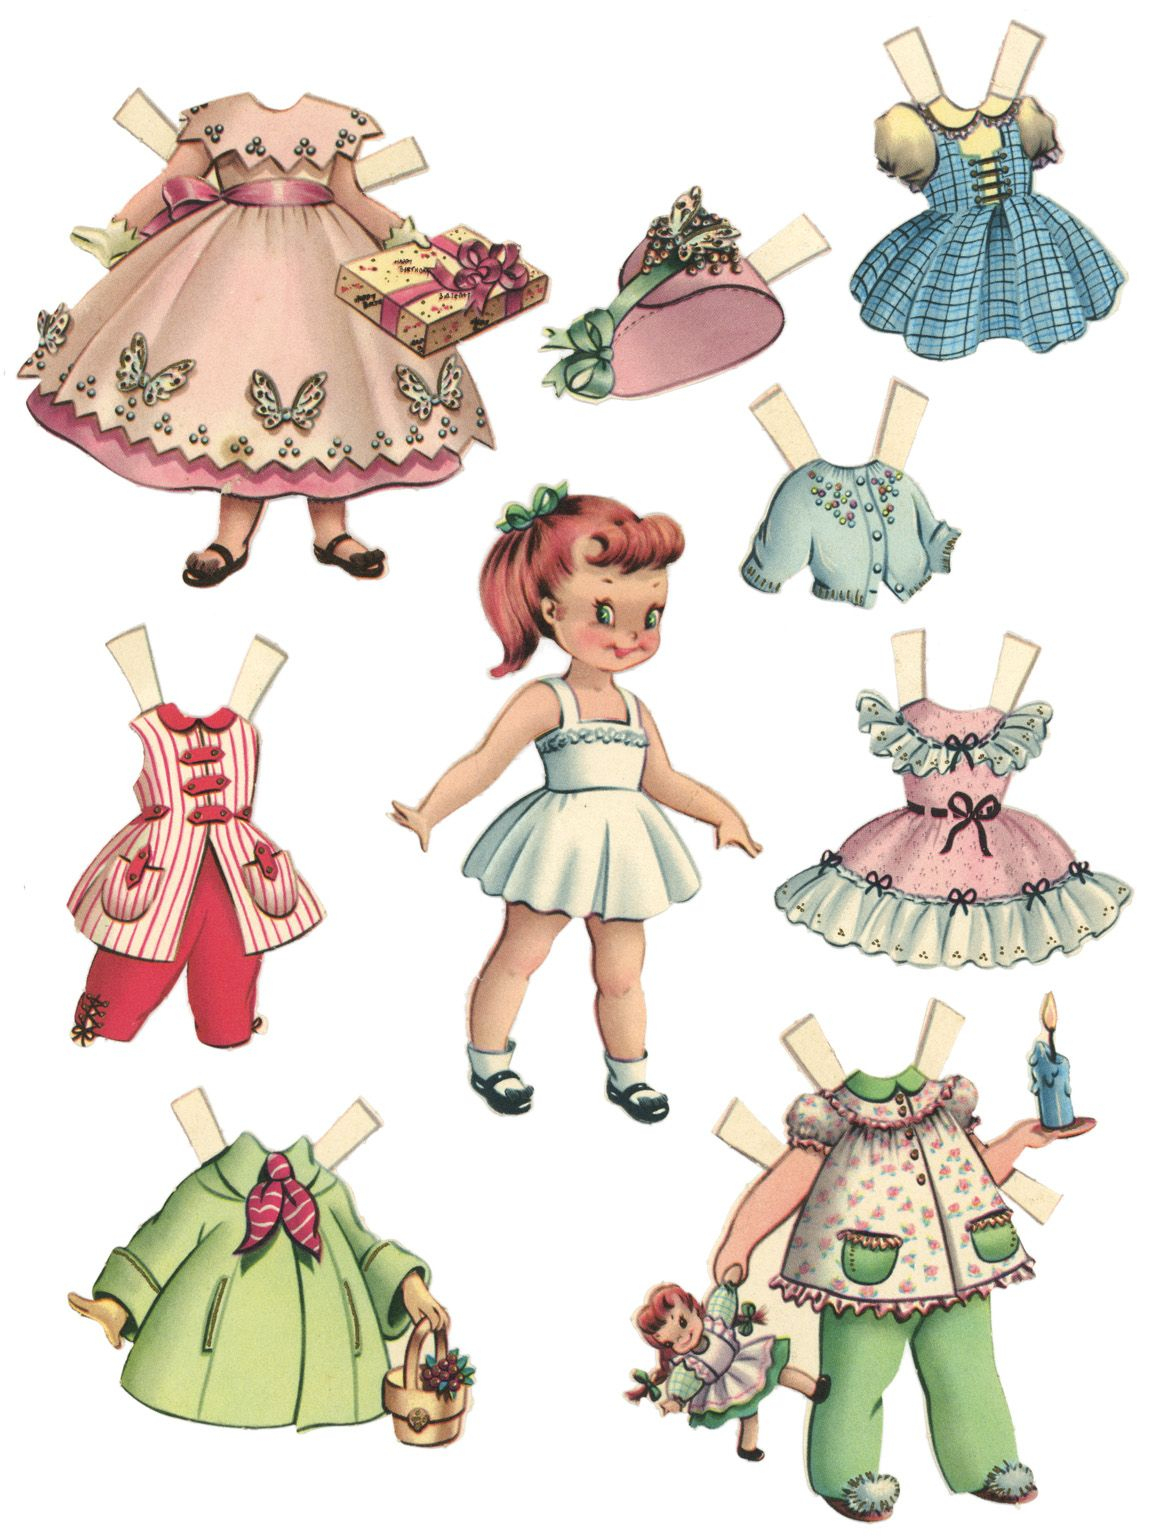 10 Free Printable Paper Dolls   Everyone Needs A Toy :)   Pinterest - Free Printable Paper Dolls